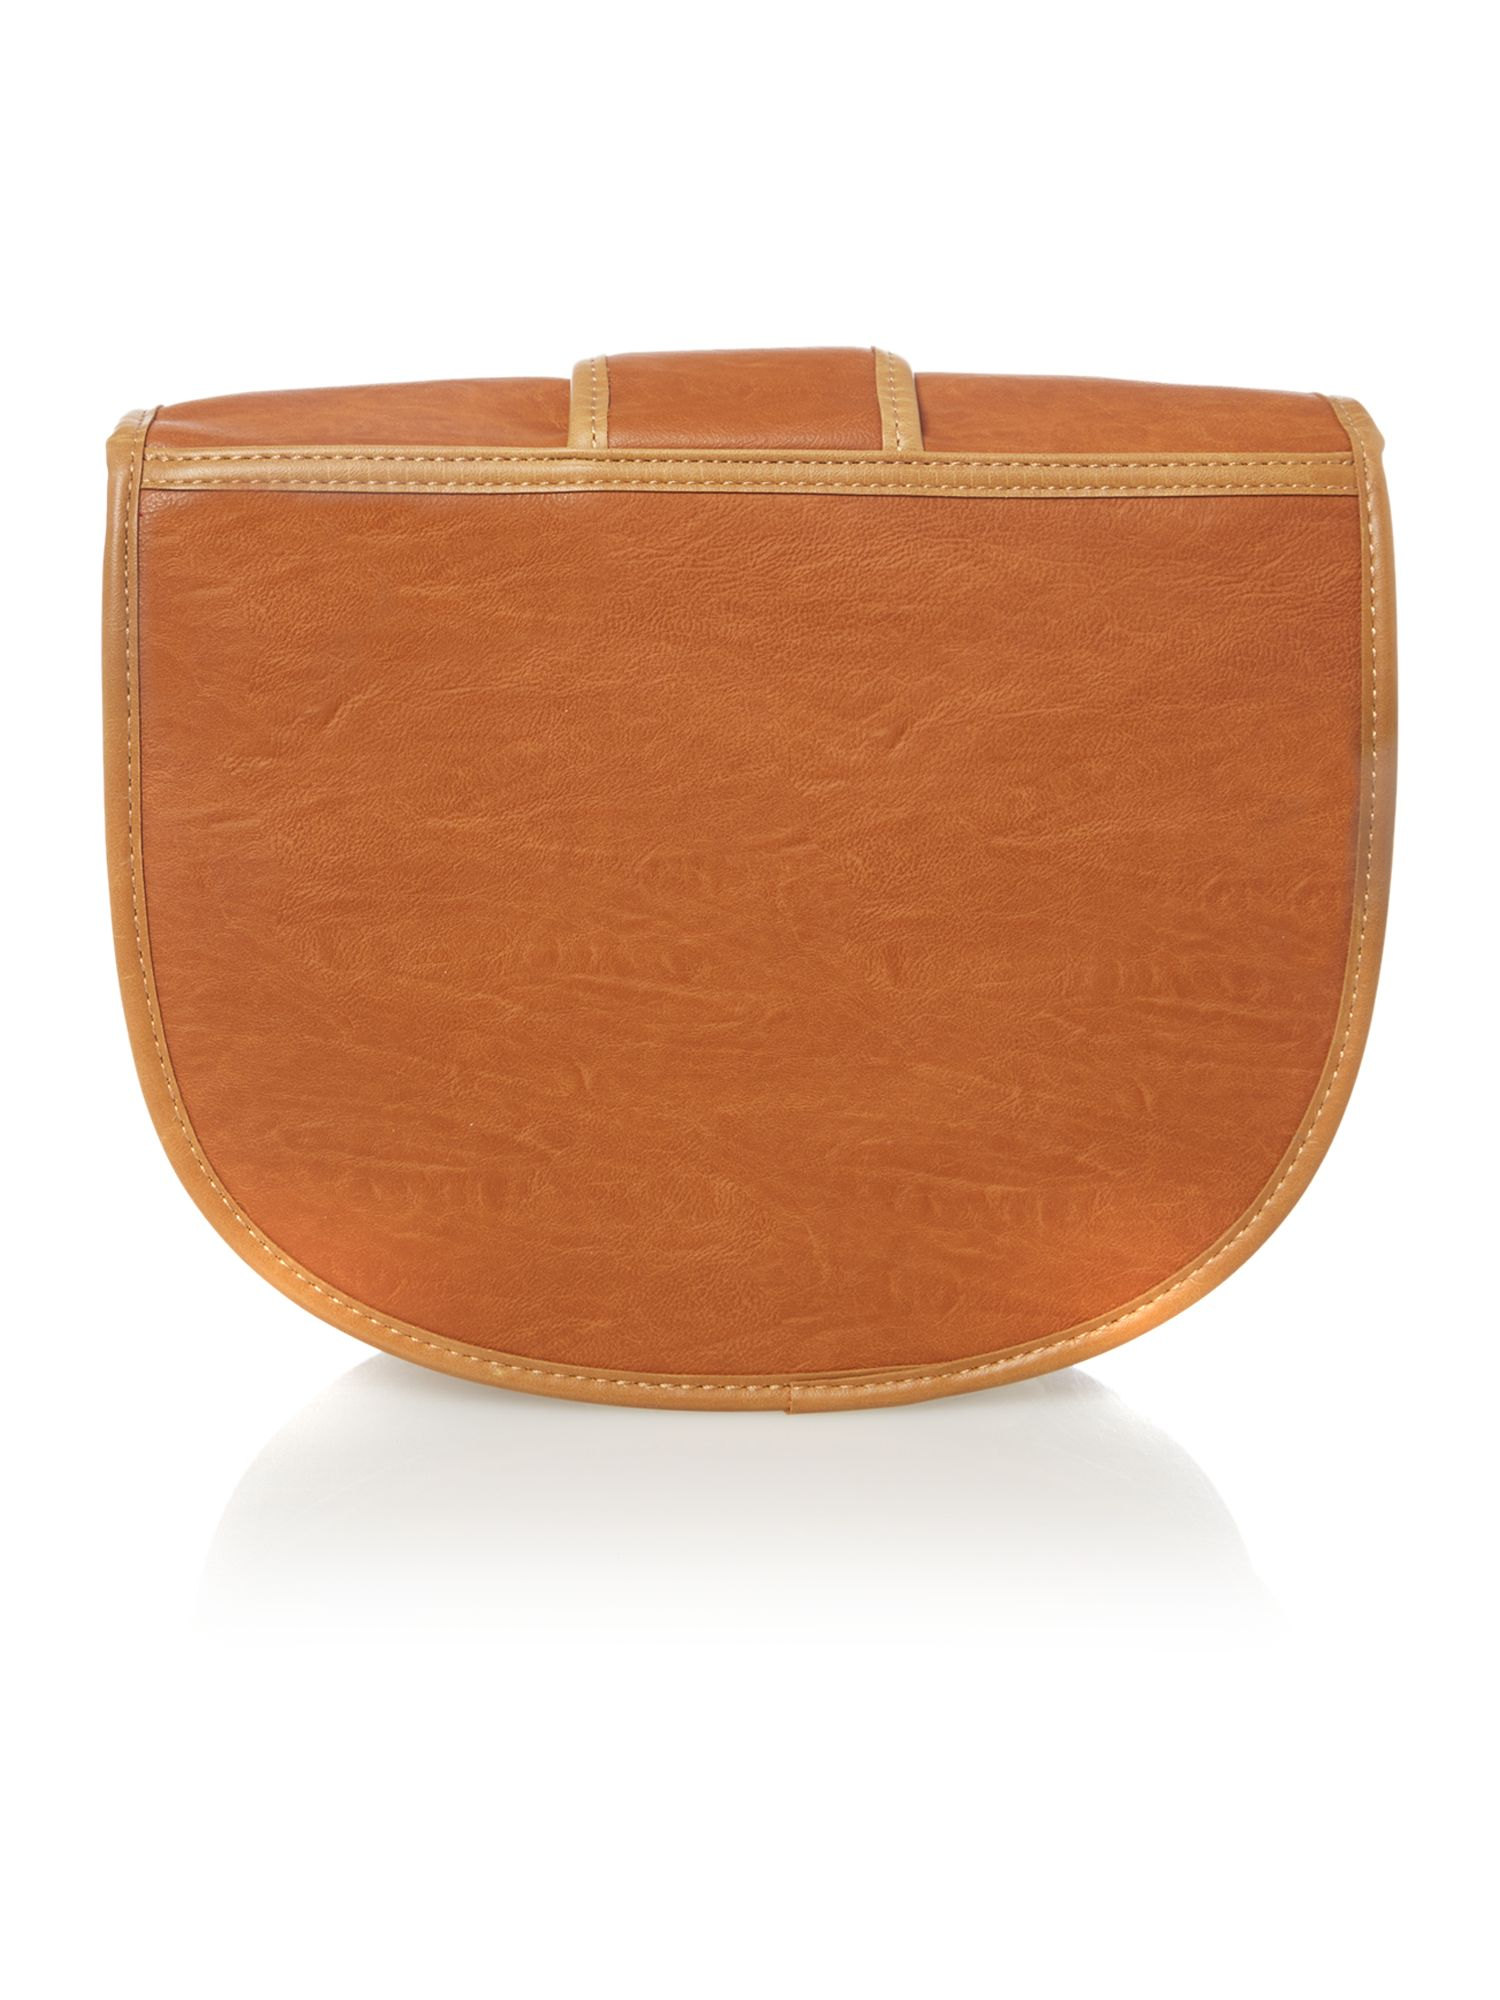 Tatum medium tan cross body bag